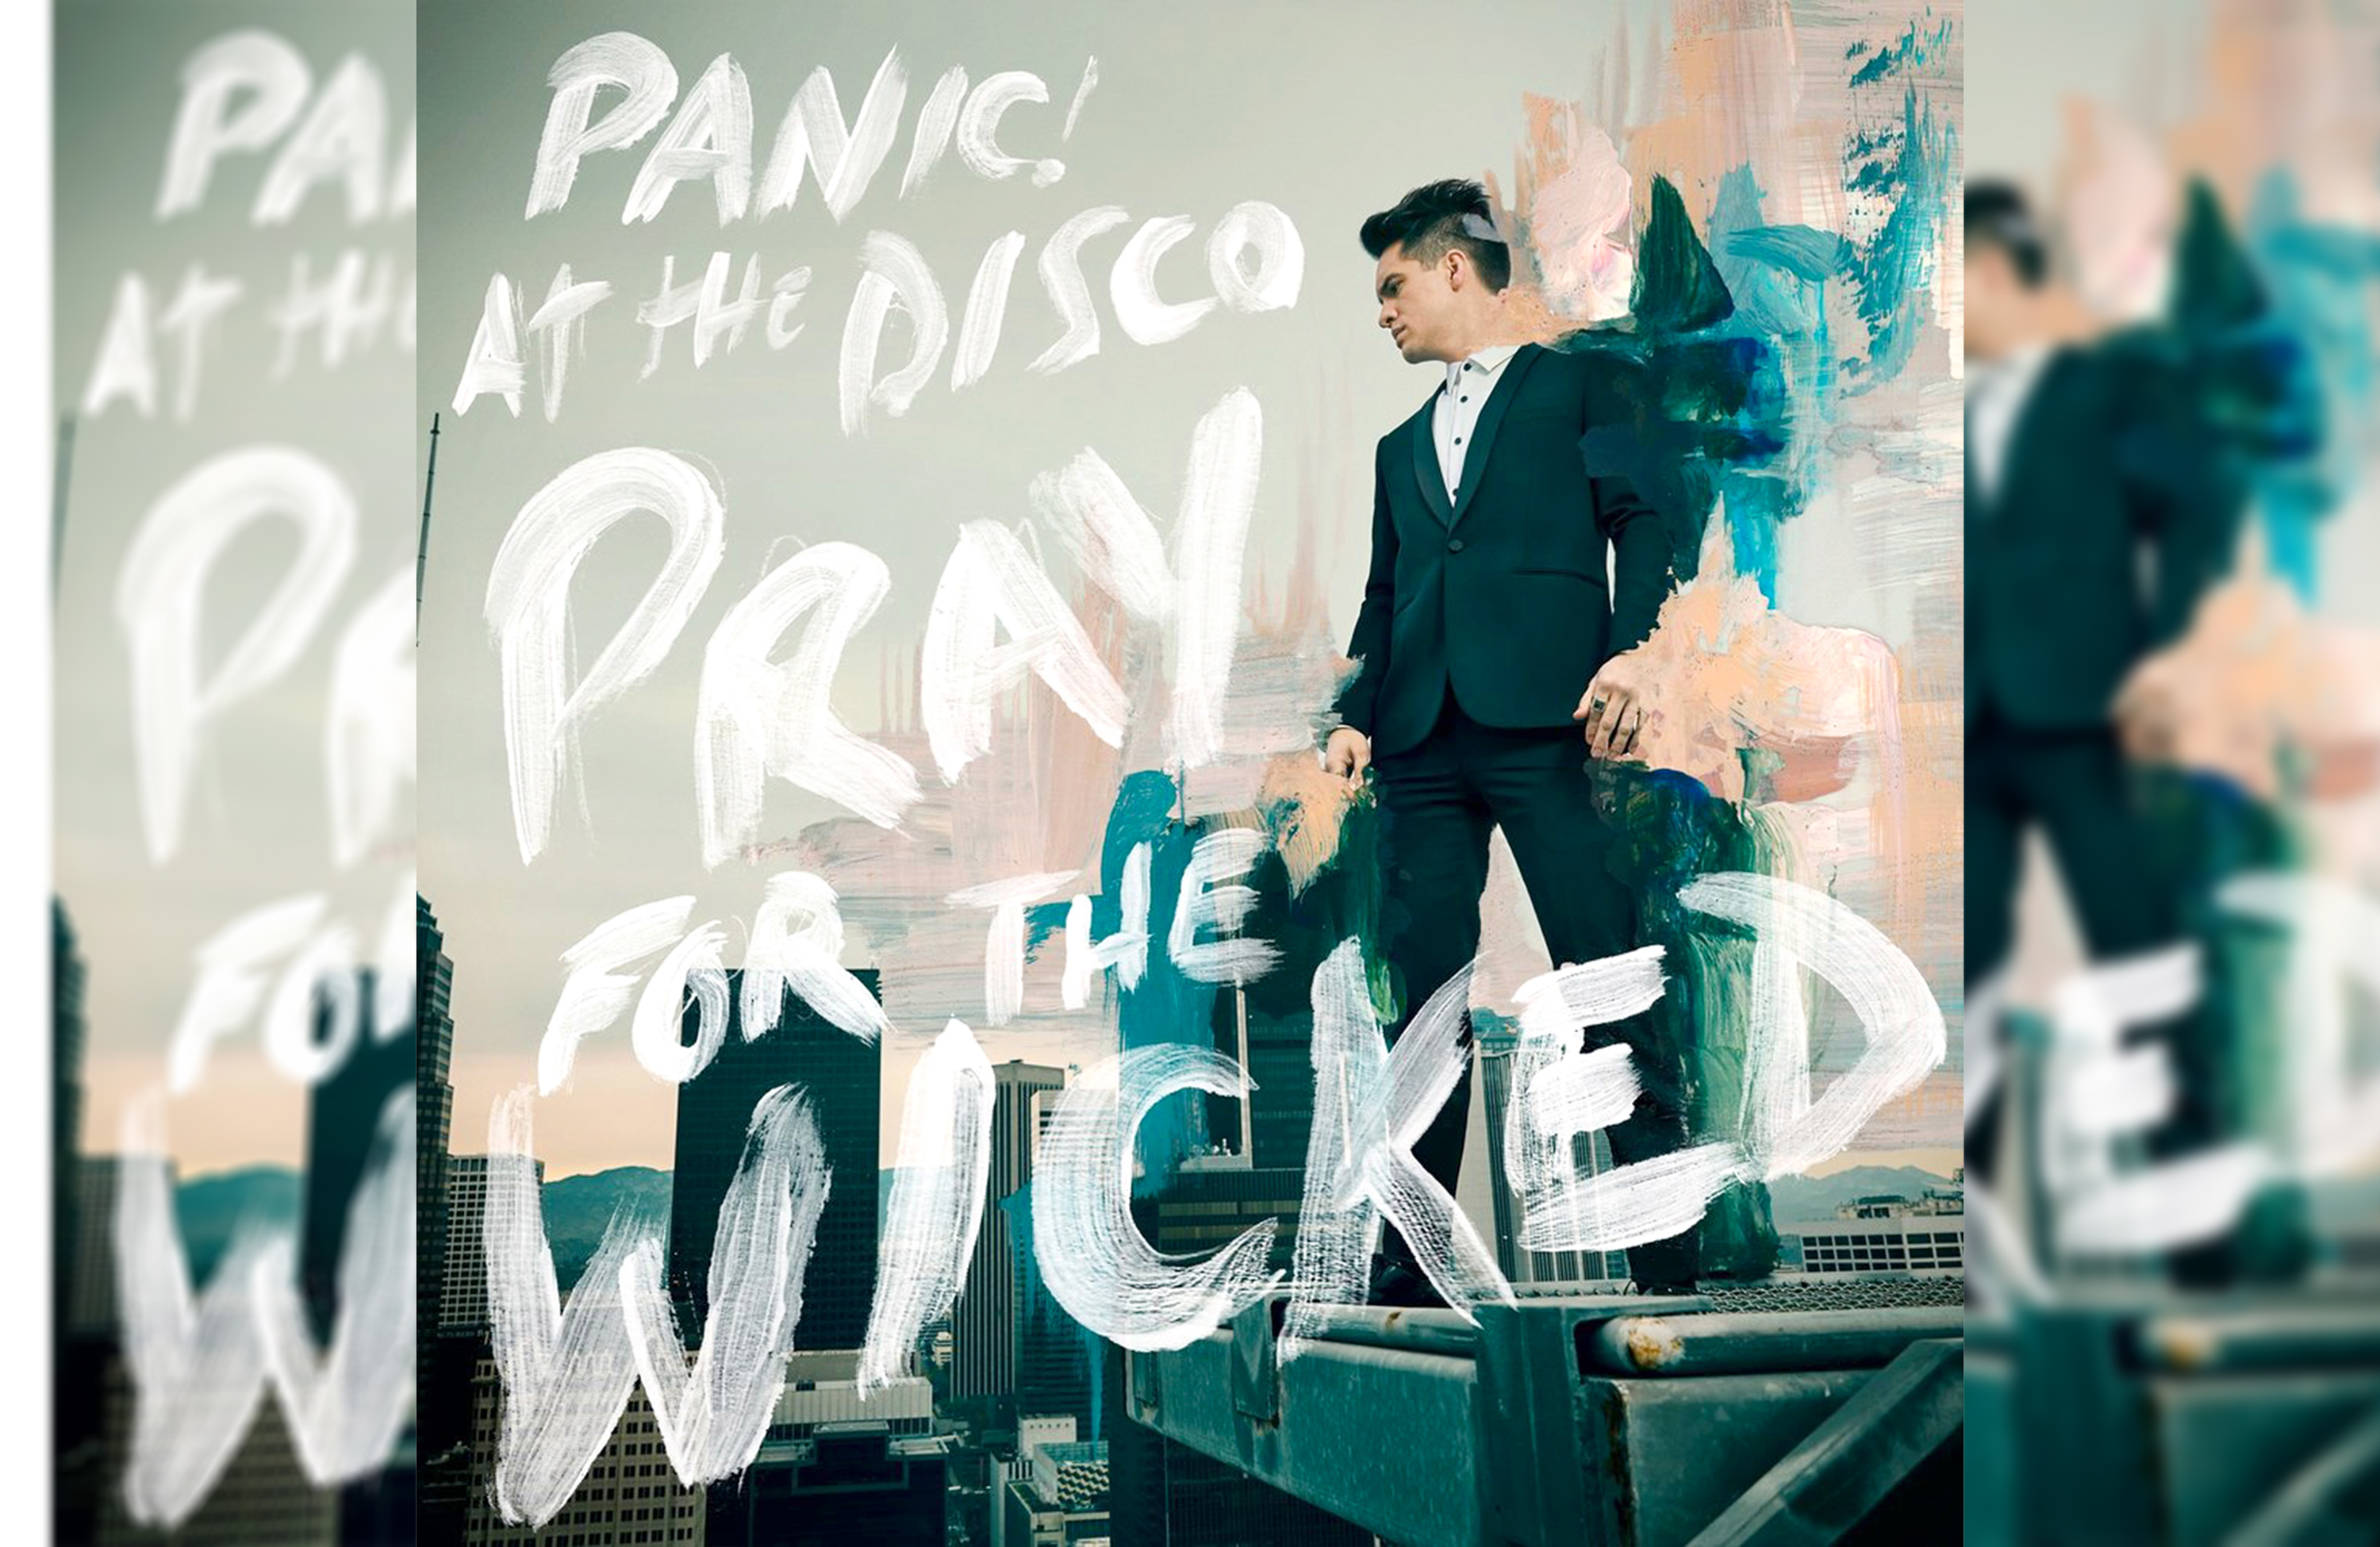 dfa5a5ac Pray for the future of Panic! at the Disco after 'Pray for the Wicked'